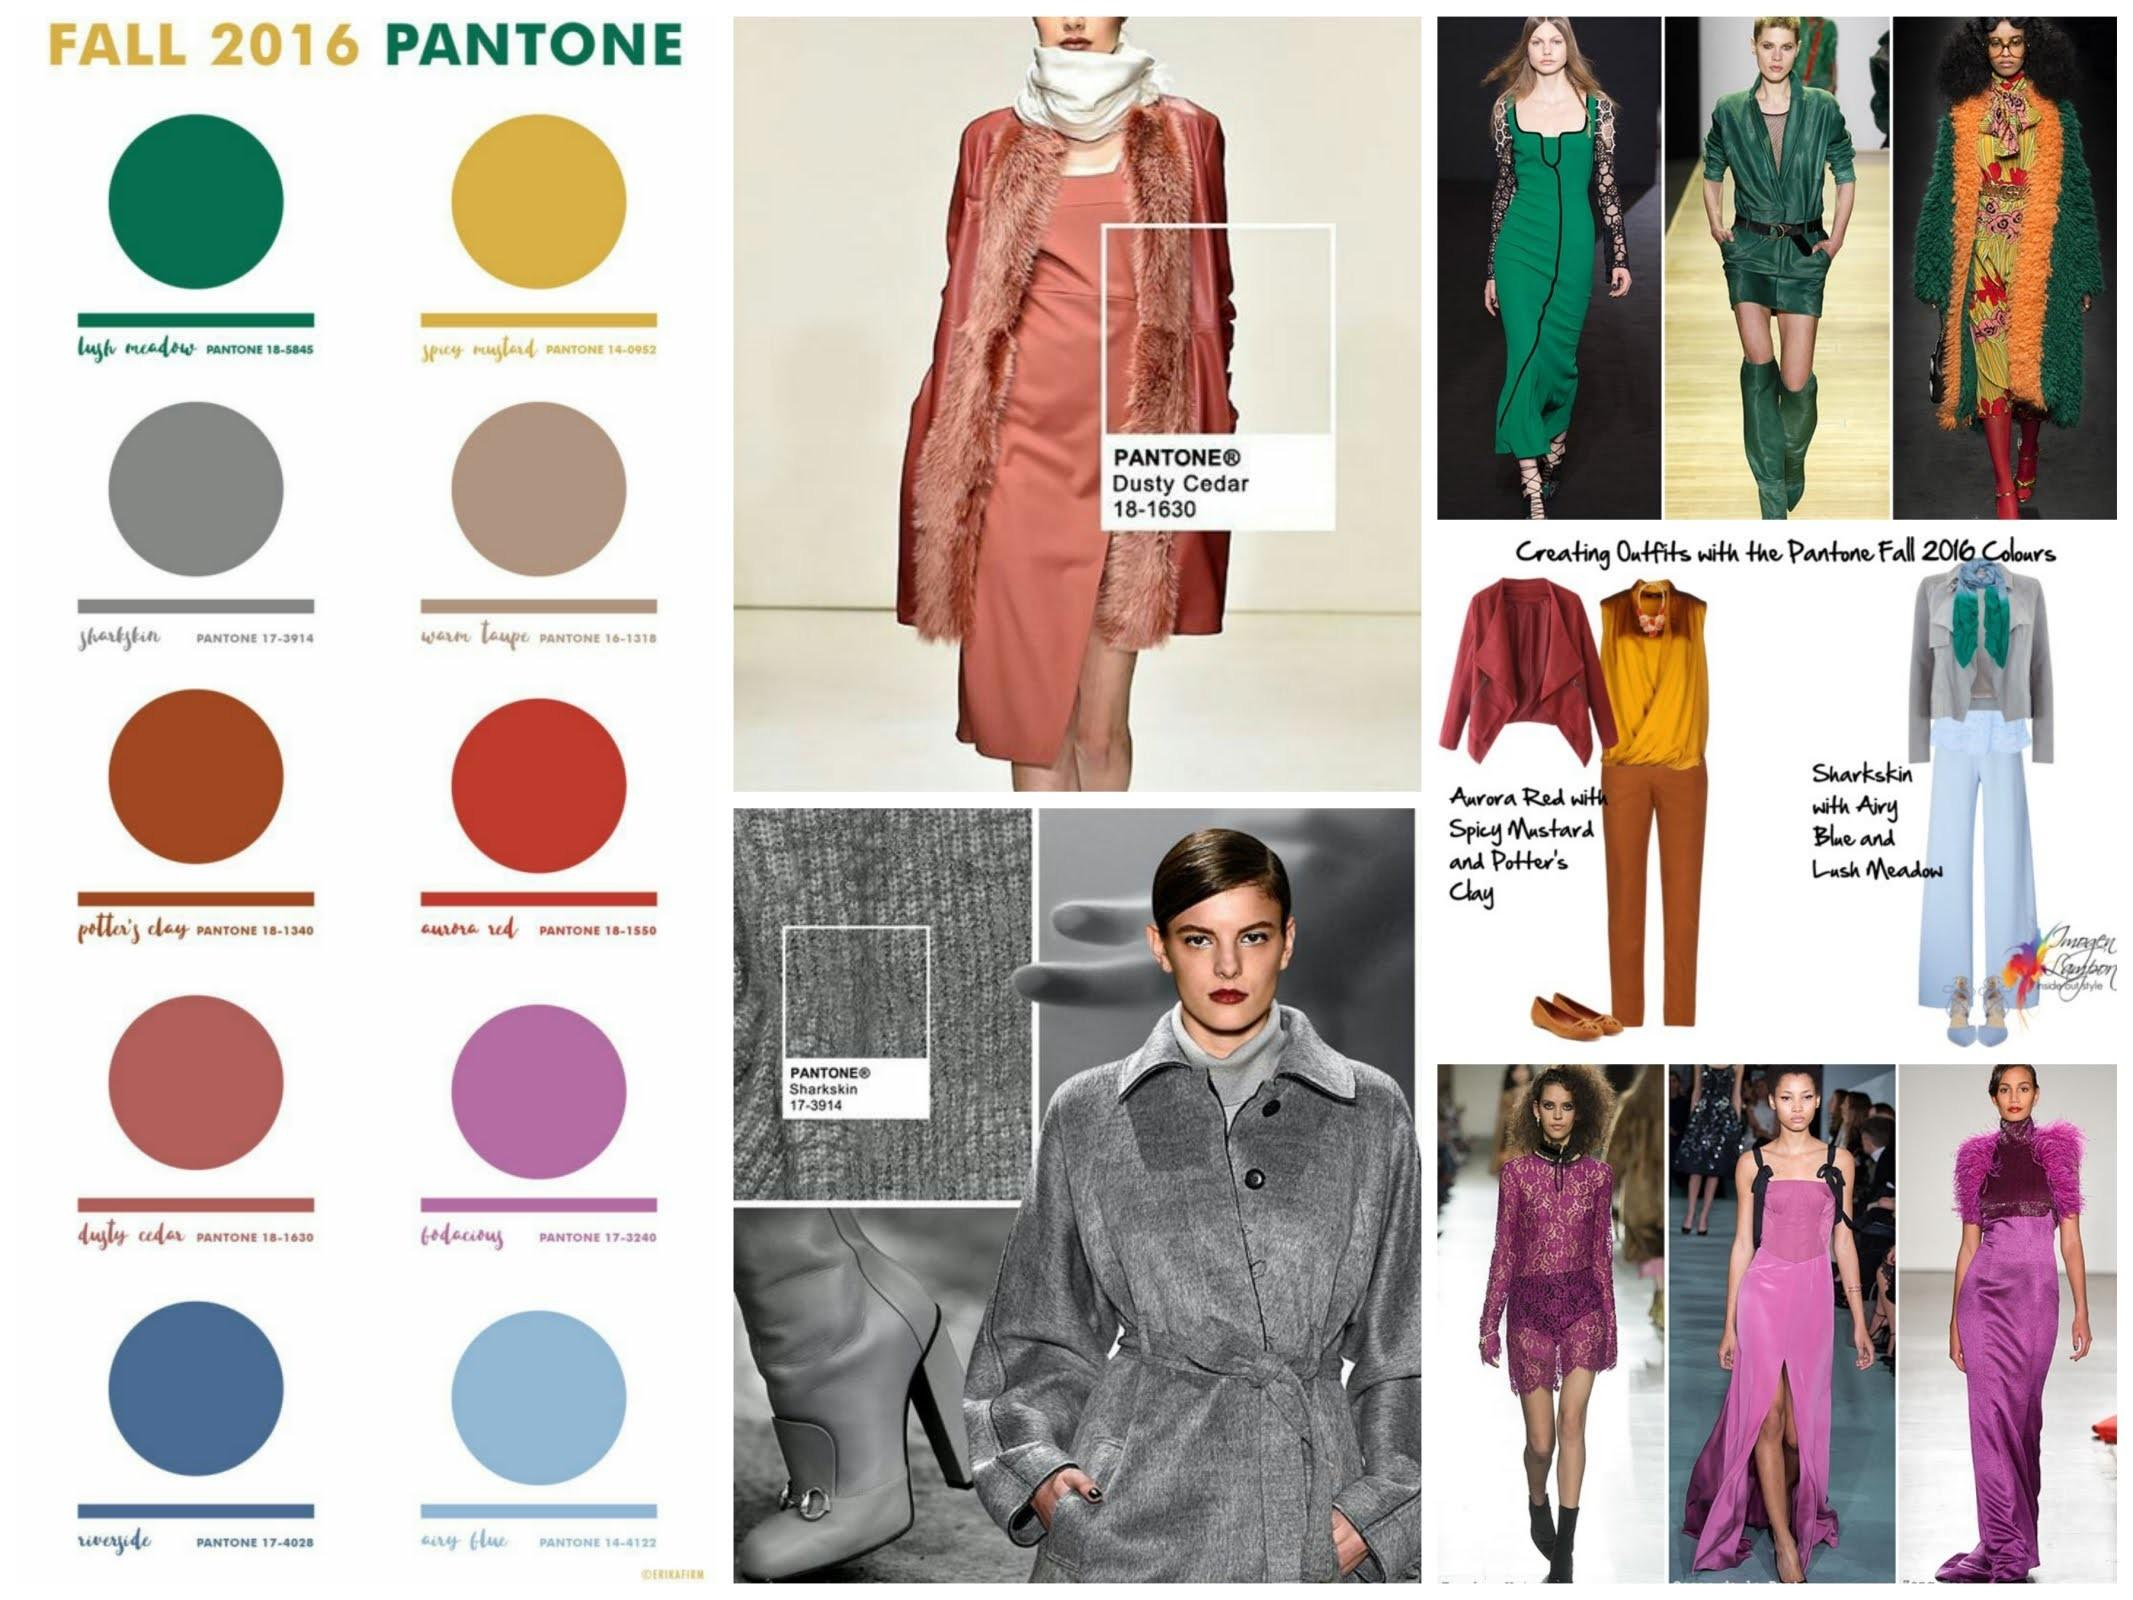 Fall Winter 2016 2017 Color Trends Top Pantone Colors